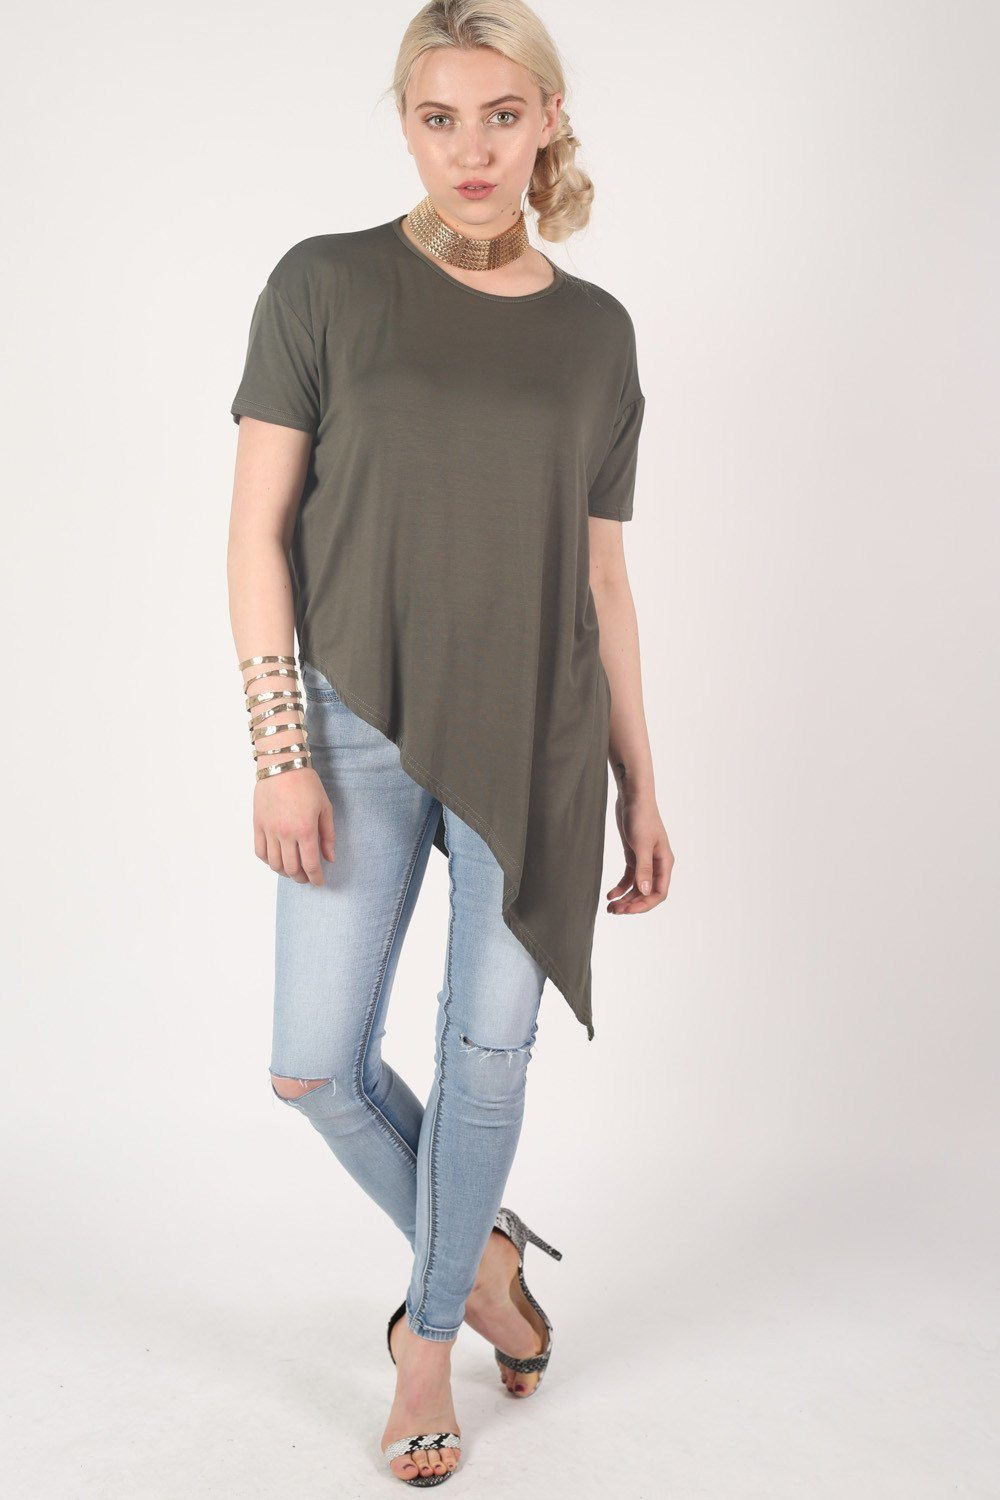 Cap Sleeve Asymmetric Top in Khaki Green 0